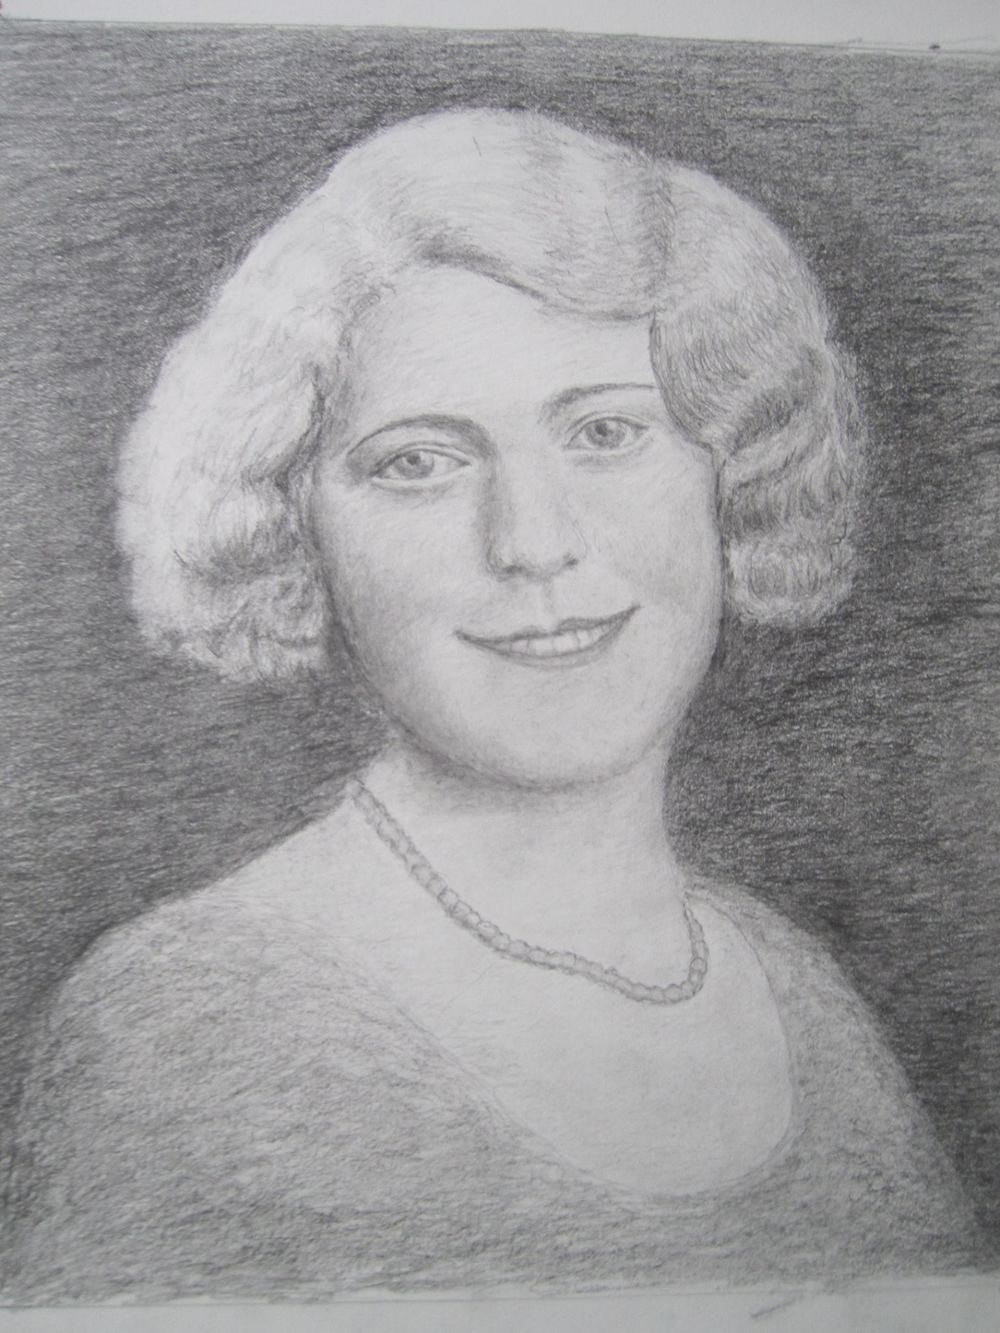 Drawing of my Mother when she was 20 years old and engaged